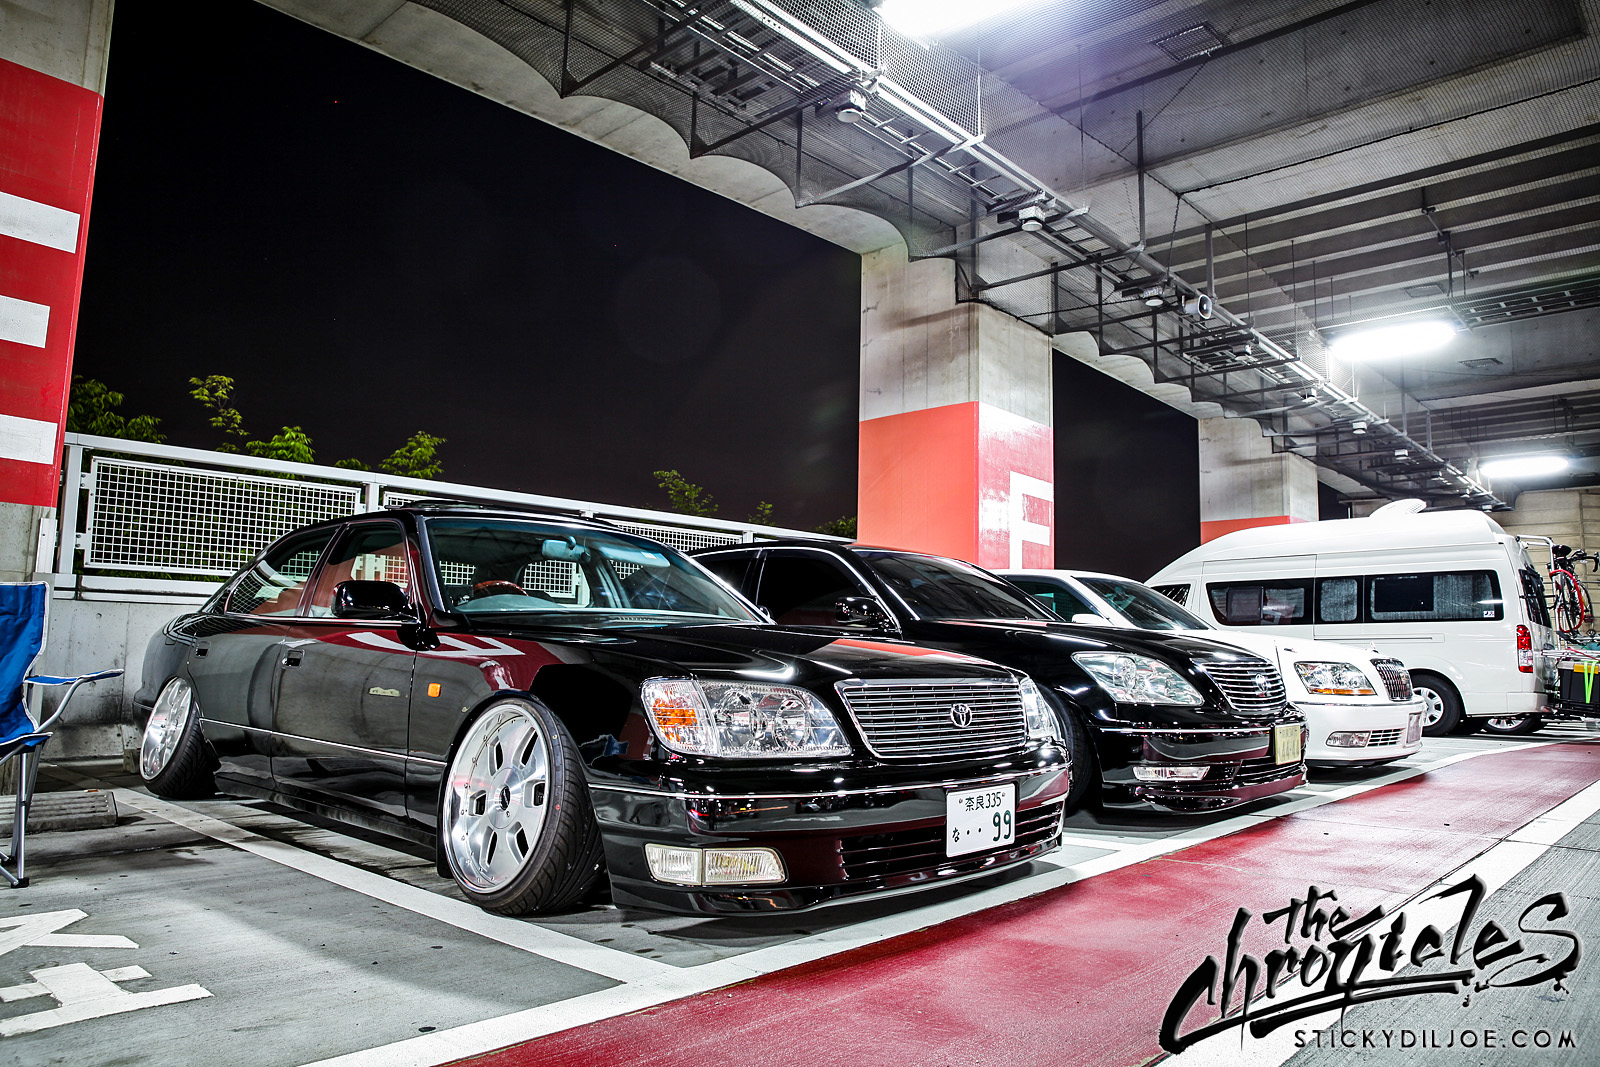 The Chronicles Vlog #7 (Part 4): Random Night Meet And The Journey To Wekfest Japan…